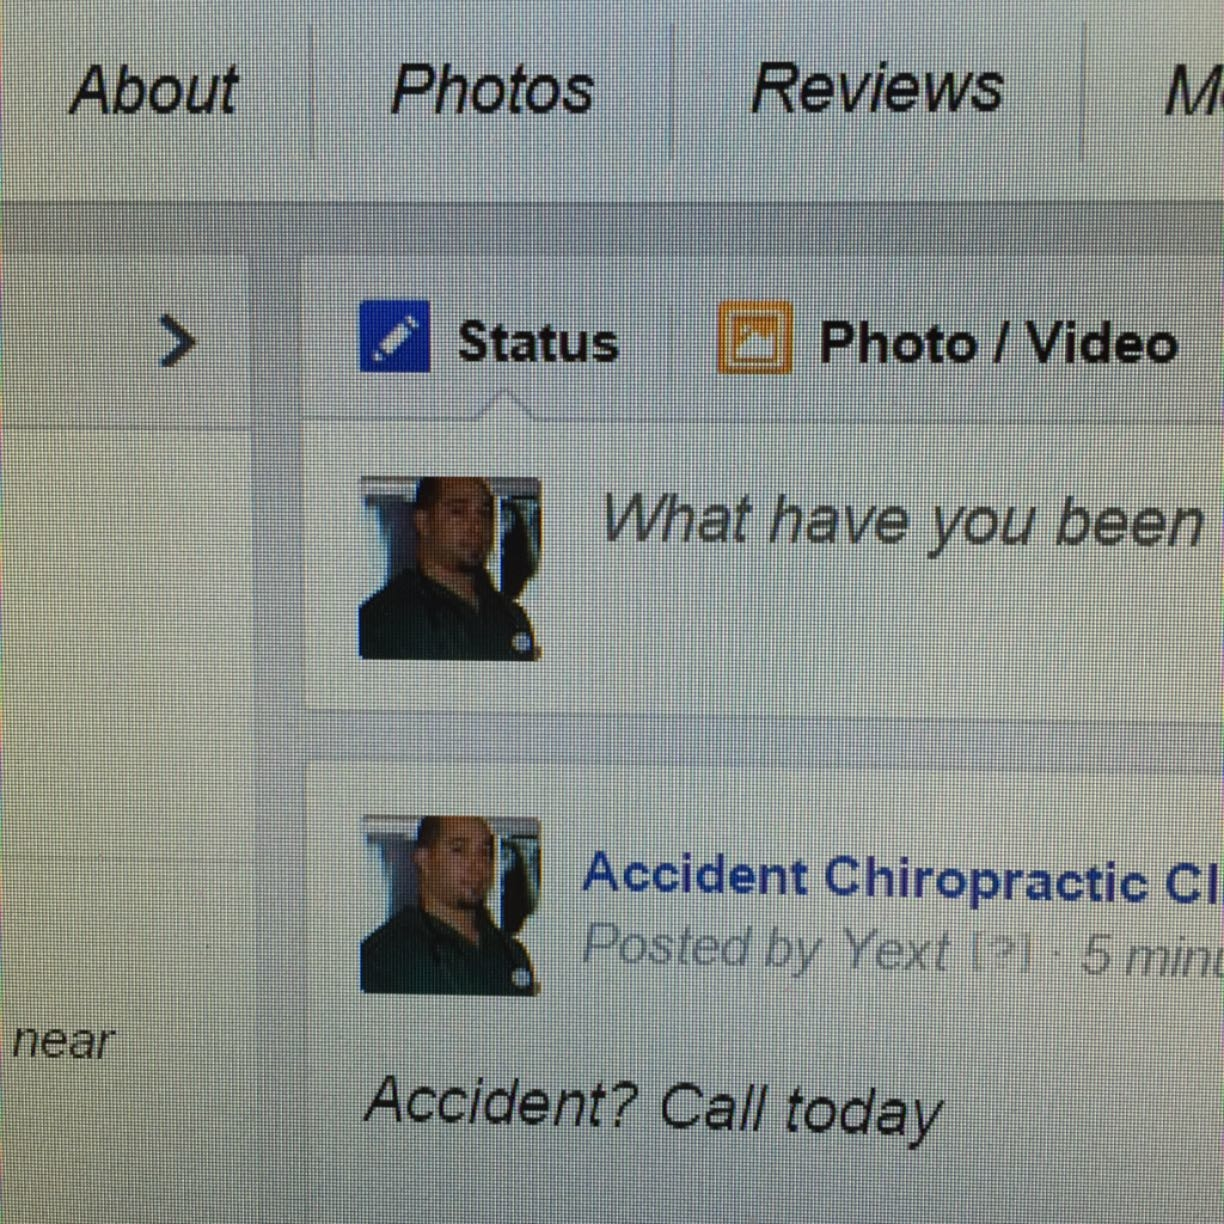 Accident Chiropractic Clinic Miami image 11